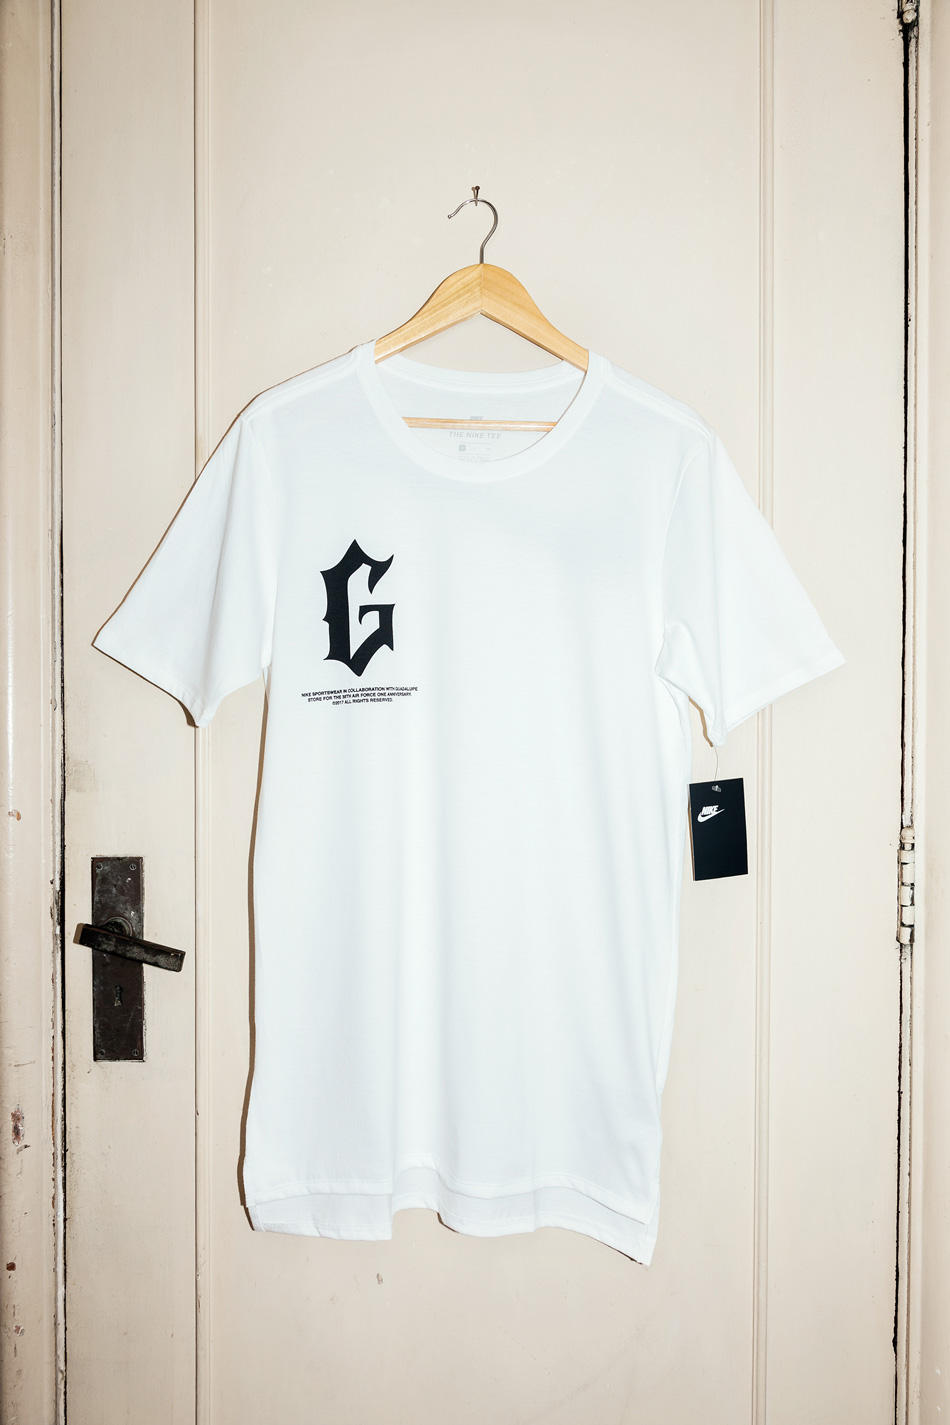 Guadalupe x Nike Air Force 1 Anniversary Tees 35 Years Uptowns